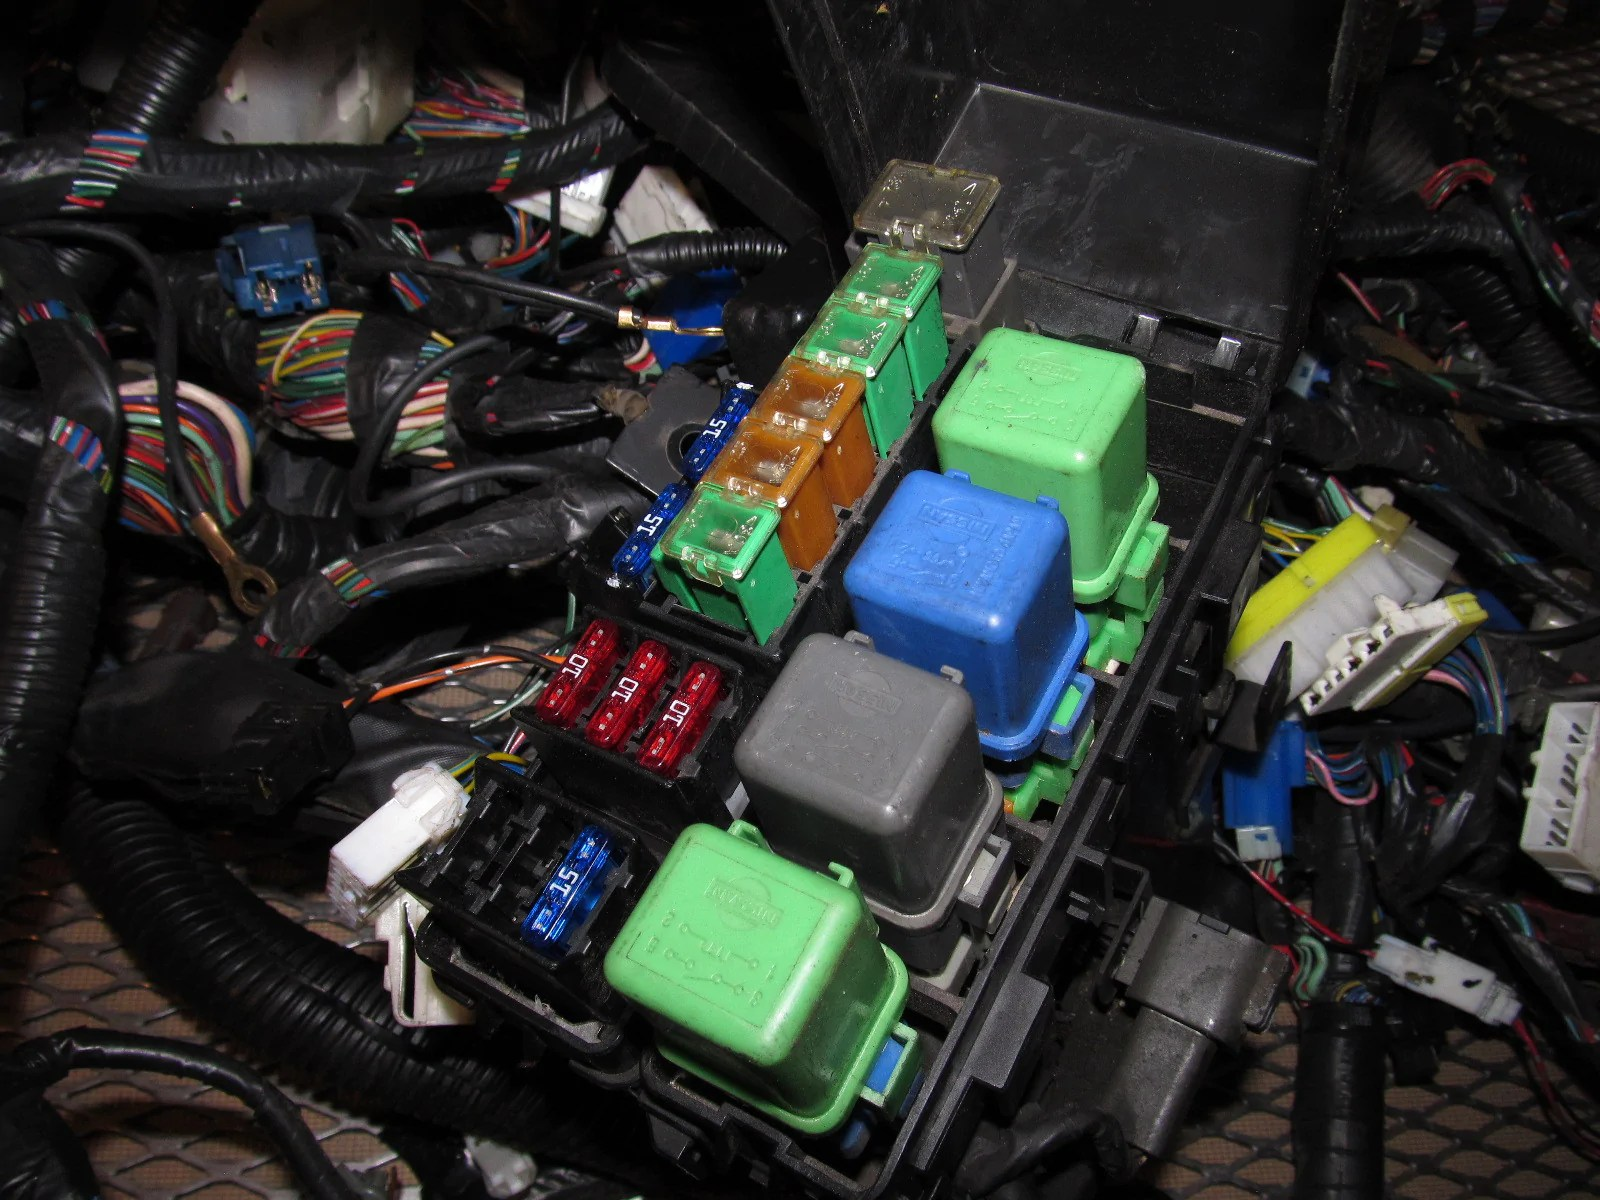 240sx battery fuse box wiring diagram detailed 95 98 240sx fuse box interior 240sx fuse box decoder [ 1600 x 1200 Pixel ]